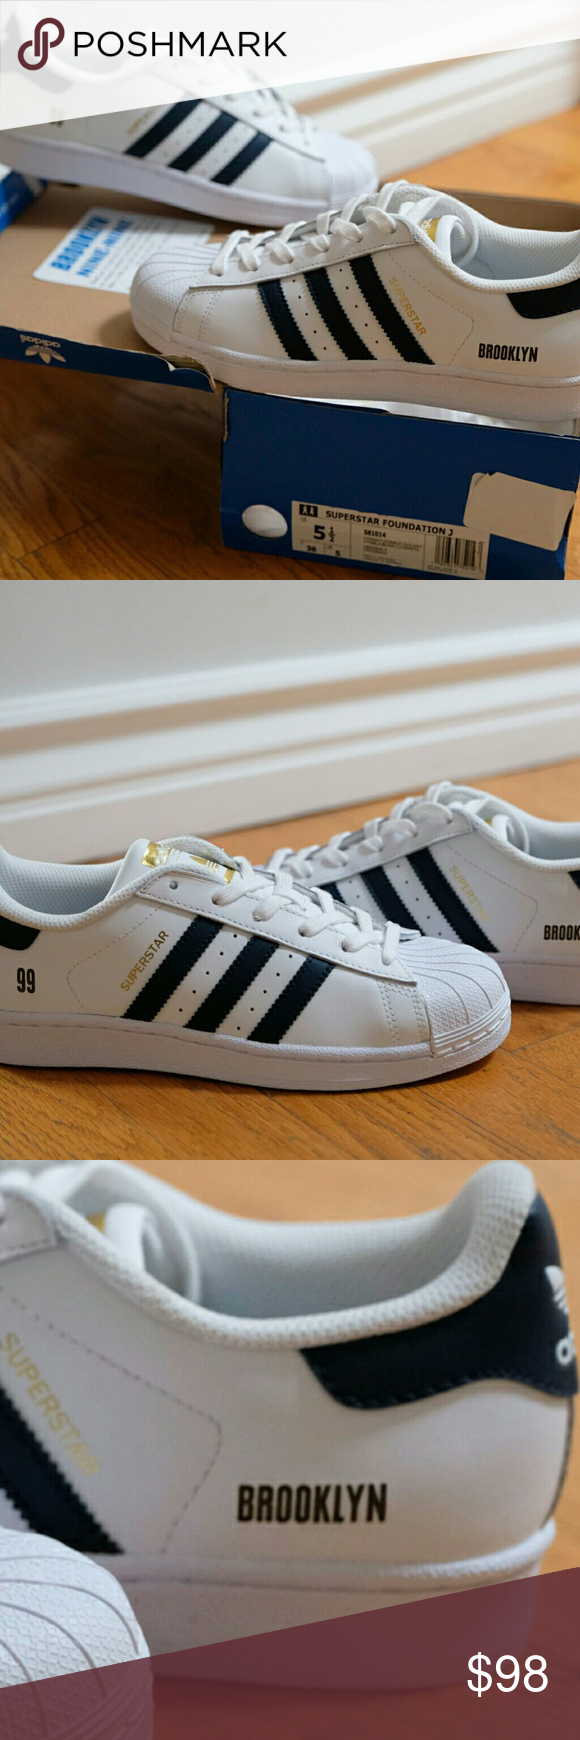 Adidas Superstar Brooklyn 99 ooak TV Show costumbres Pinterest